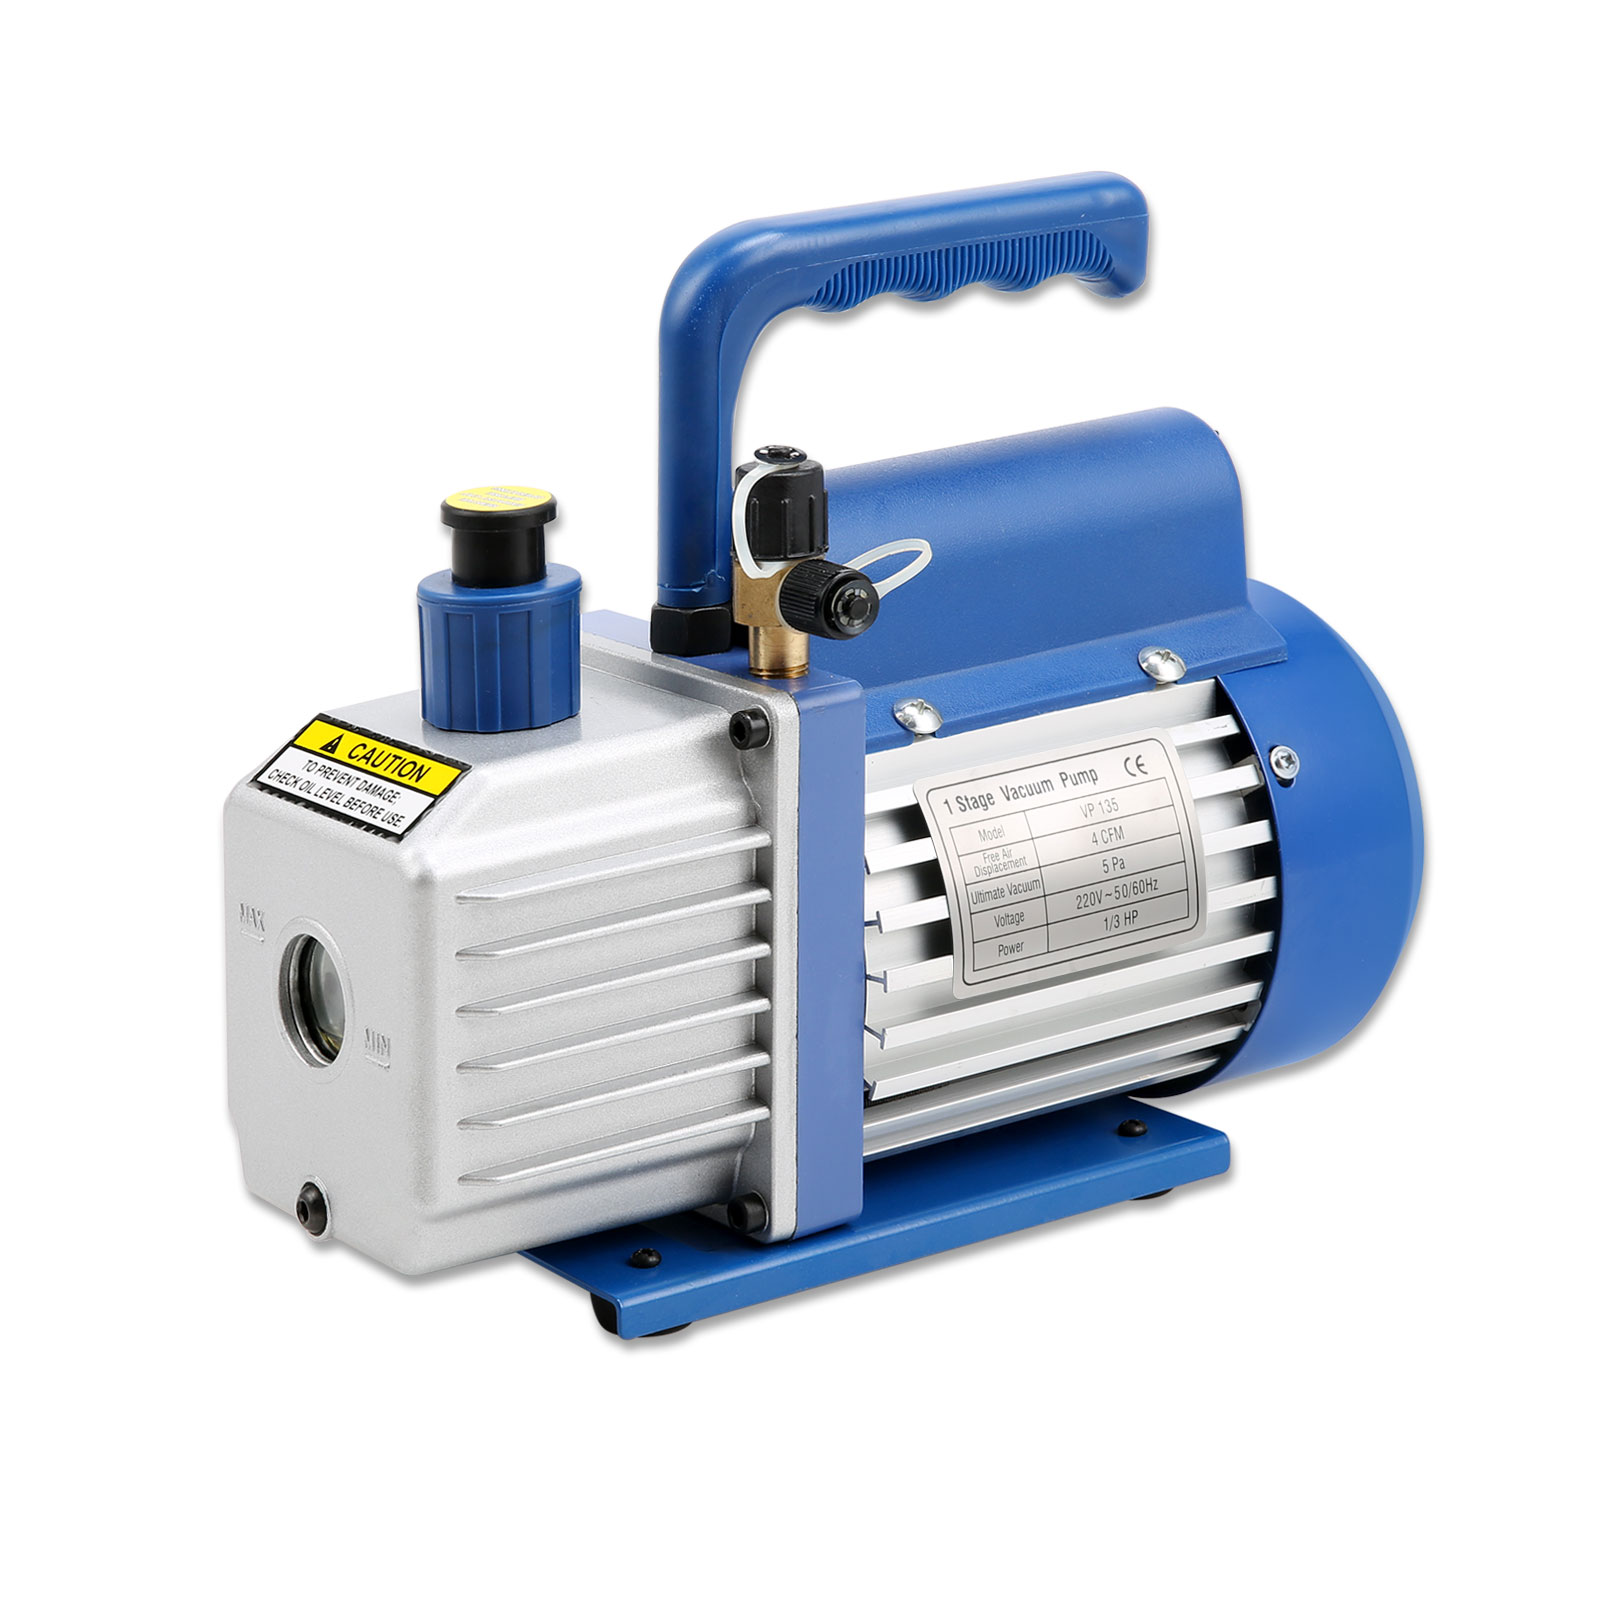 #19407B New 4CFM 1/3HP Single Stage Vacuum Pump Air Conditioning  Brand New 10091 Air Condition Pump images with 1600x1600 px on helpvideos.info - Air Conditioners, Air Coolers and more